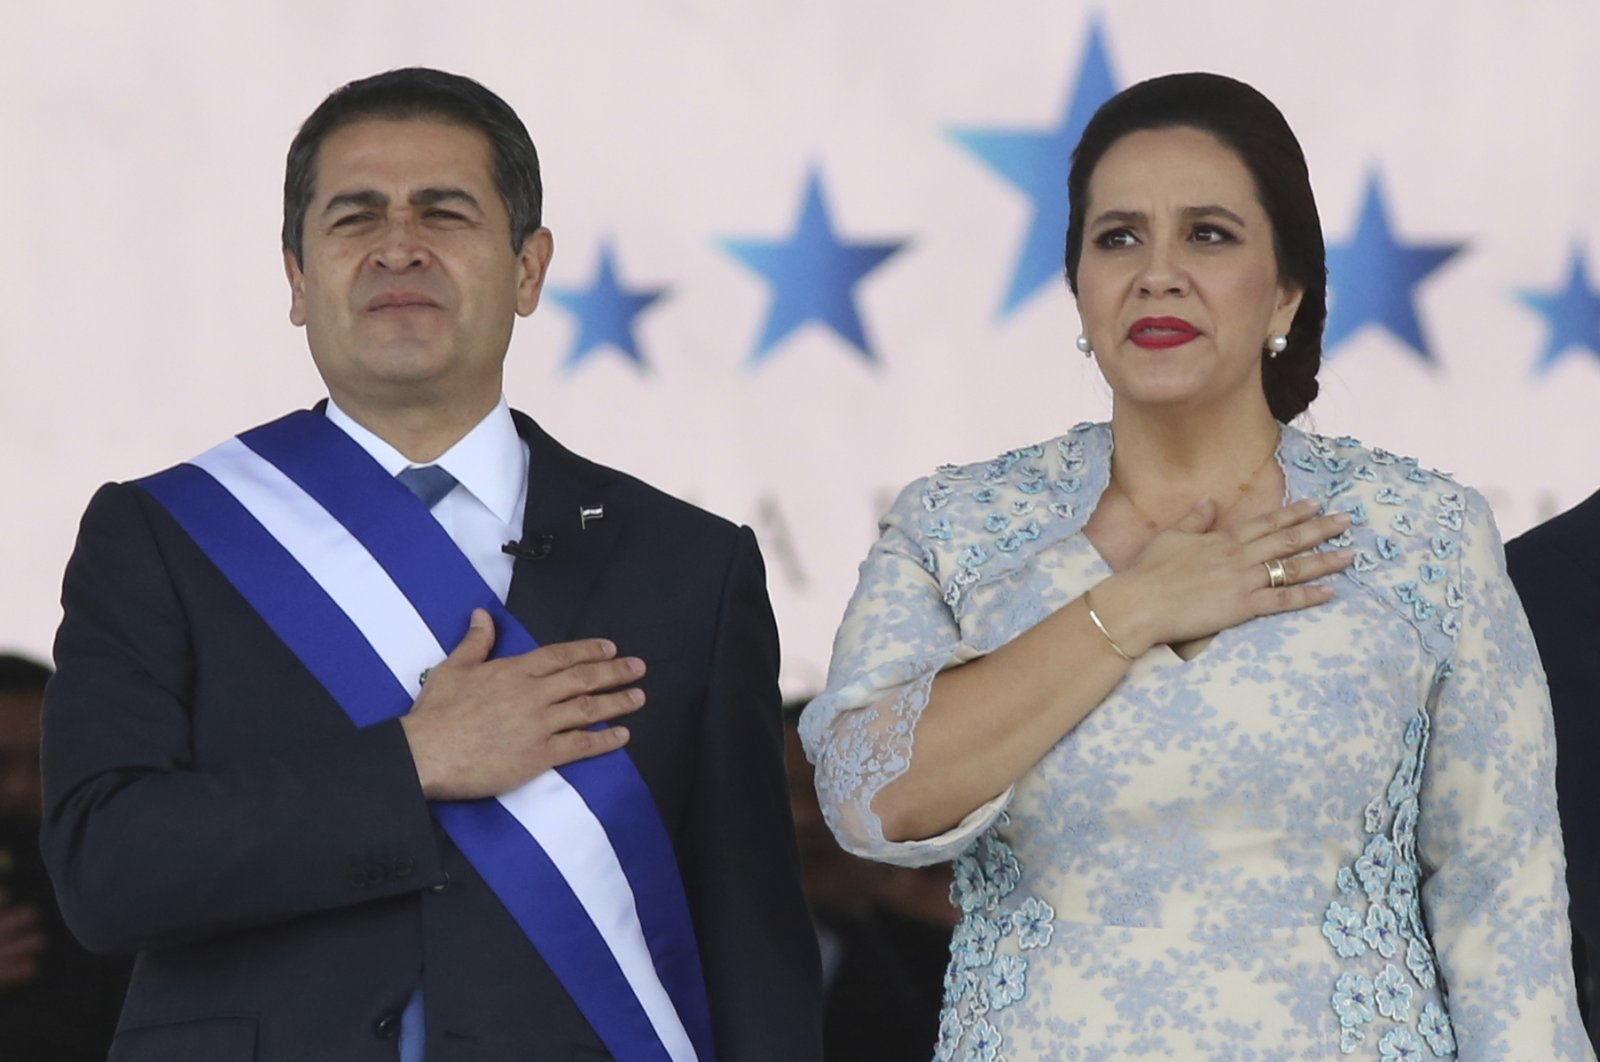 Honduran President Juan Orlando Hernandez stands with his wife Ana Garcia during the presidential inauguration ceremony for his second term at the National Stadium, Tegucigalpa, Jan. 27, 2018. (AP Photo)